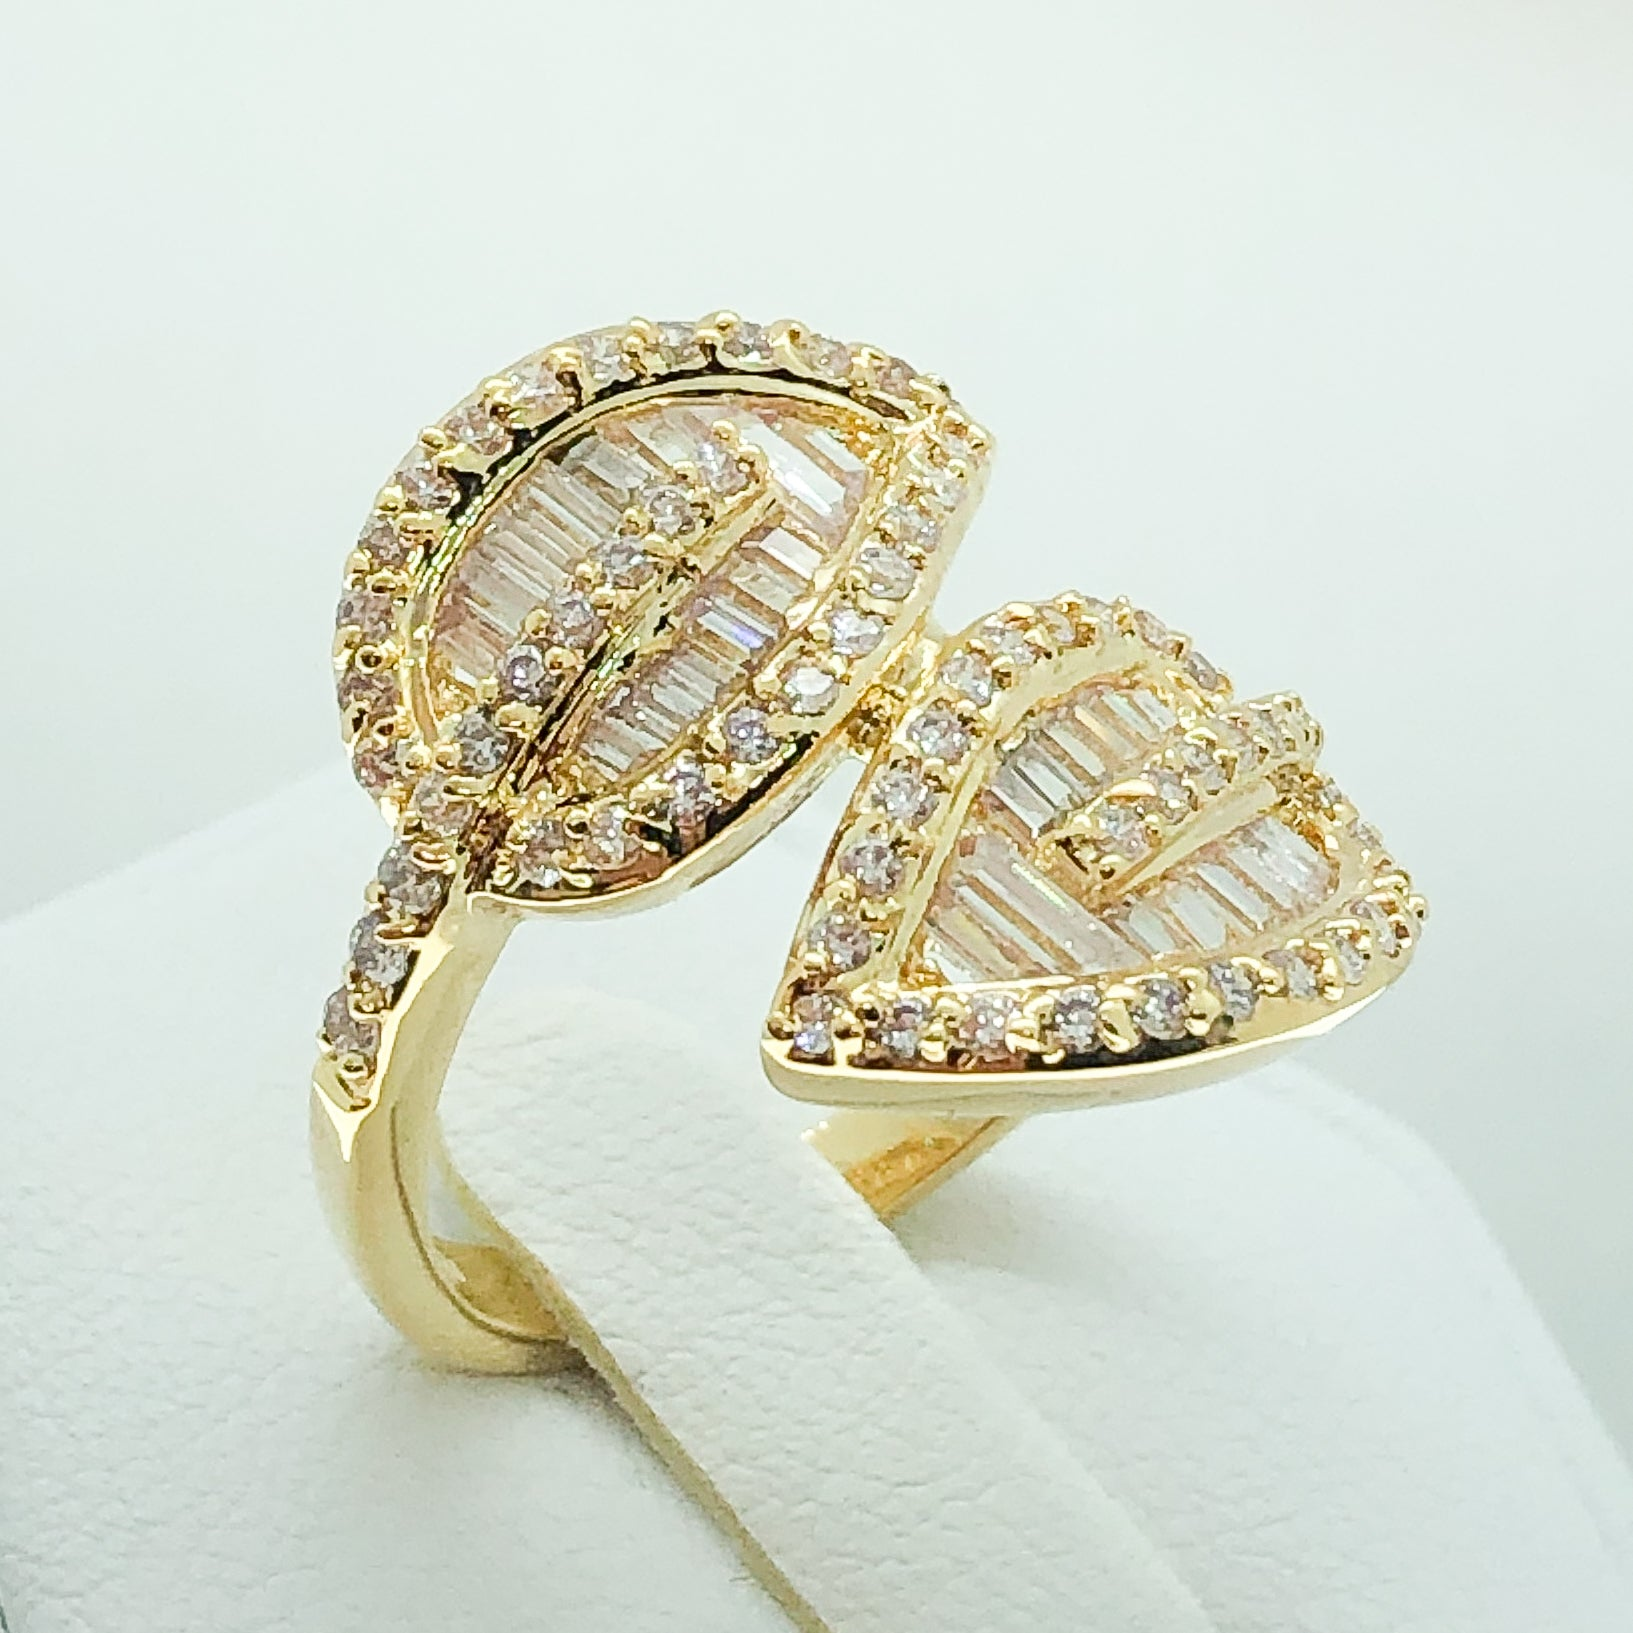 ID:R5126 Women 18K Yellow Gold GF Fashion Jewelry Sparkly Clear Gemstone Unique Two Leaves Design Cocktail Ring